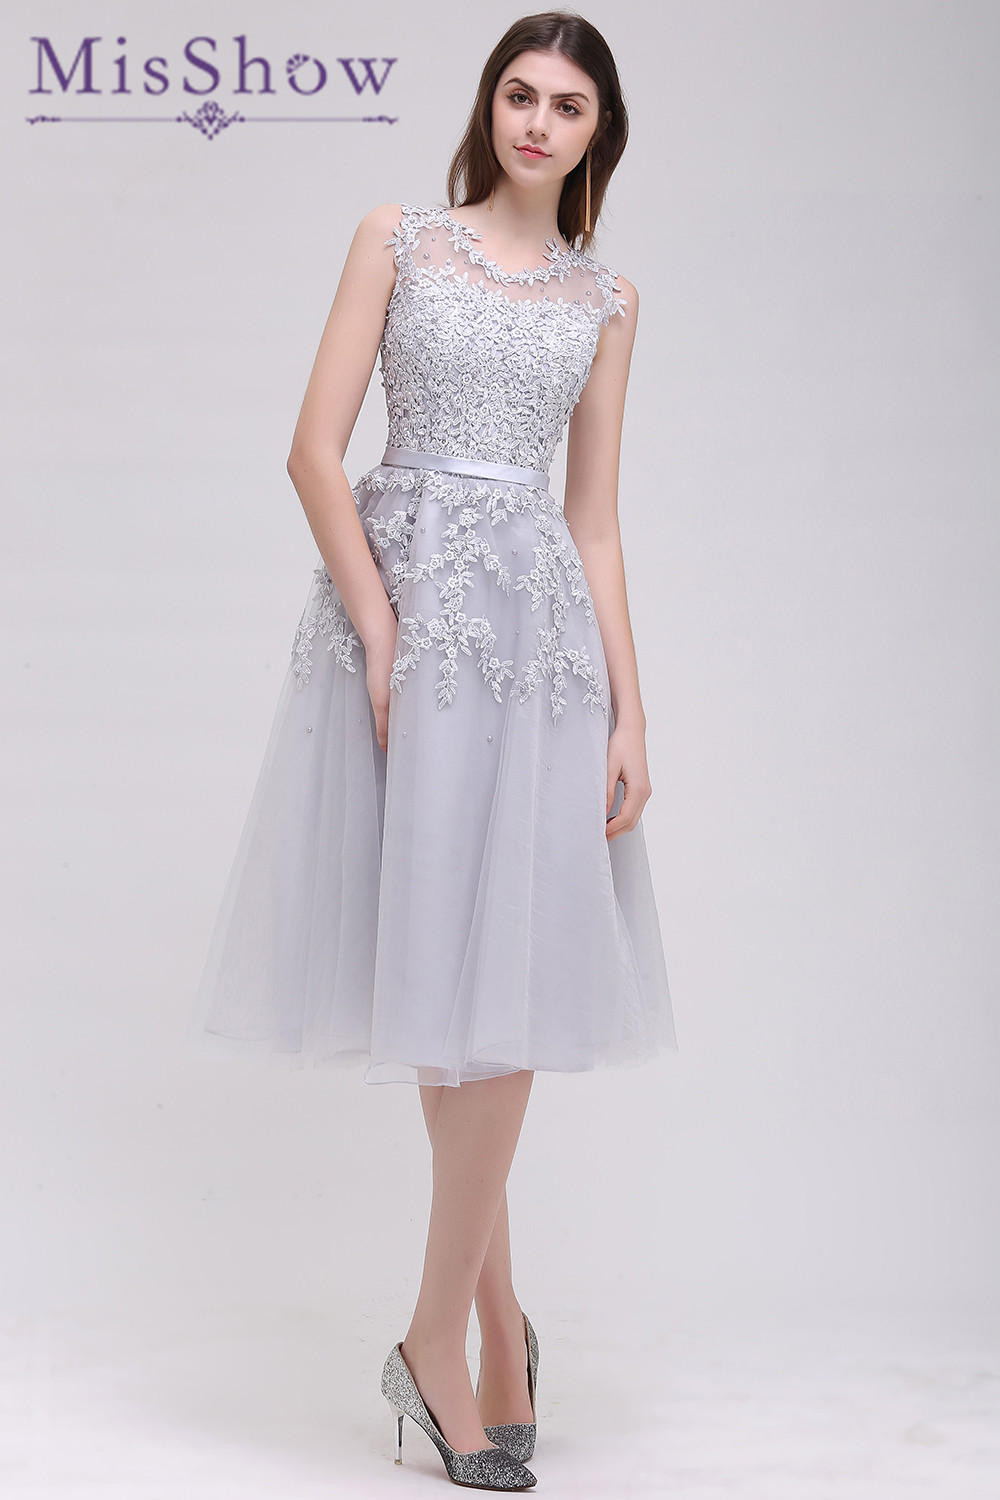 New Gray Short Bridesmaids Dresses 2019 Sky Blue Applique Beads Sheer Back Party Gown Dress For